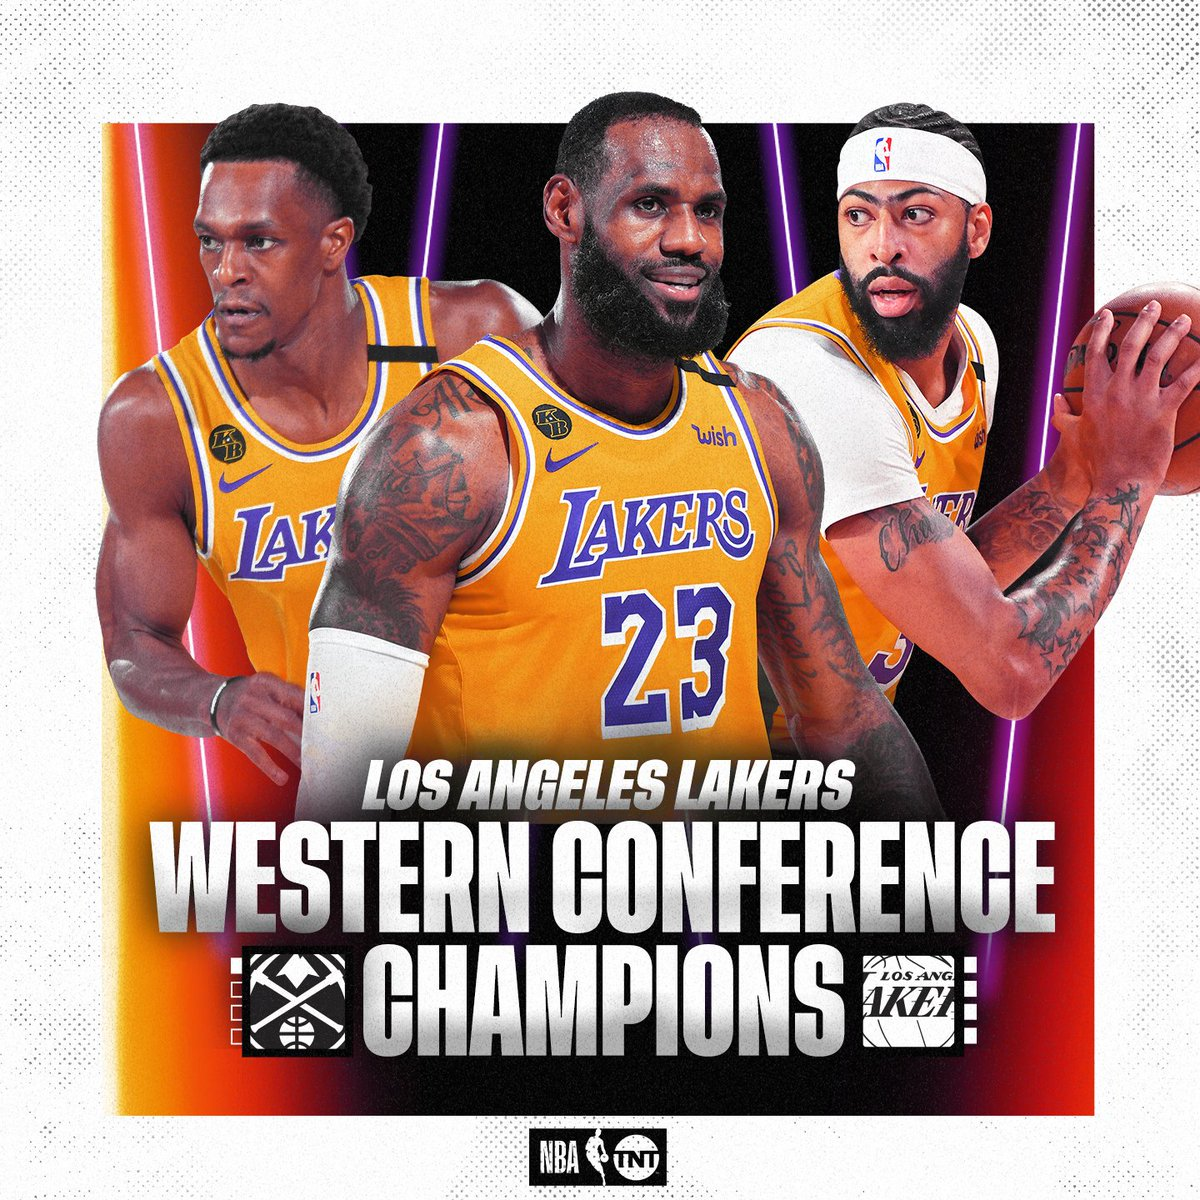 The Lake Show is back in the #NBAFinals for the first time since 2010 ⭐️